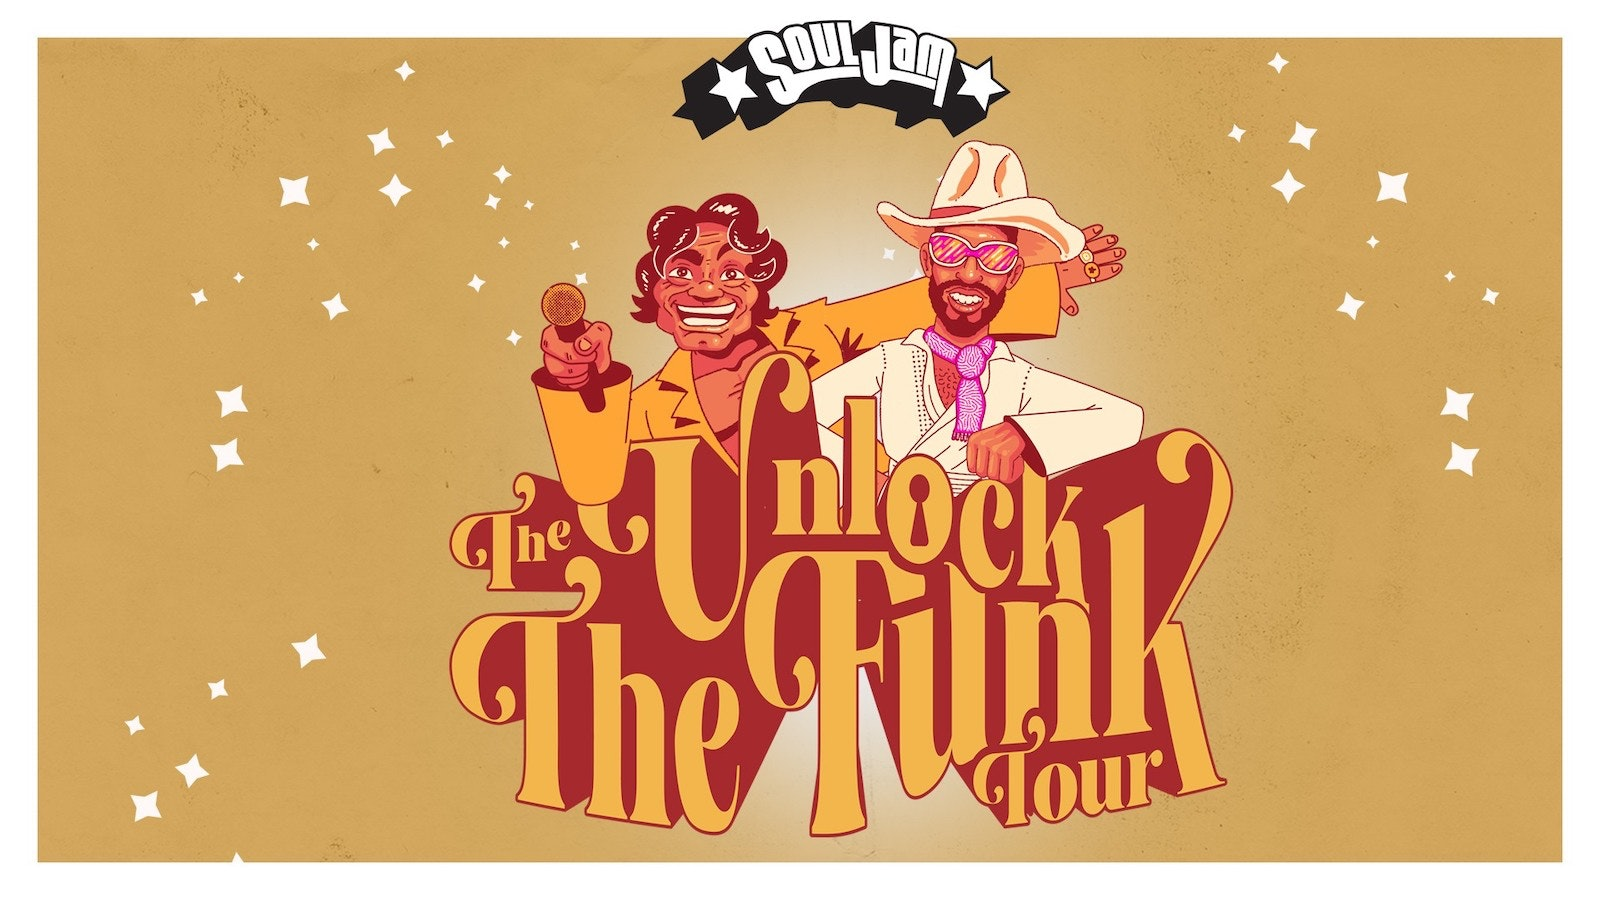 SoulJam | Unlock the Funk Tour | Cardiff | Clwb Ifor Bach